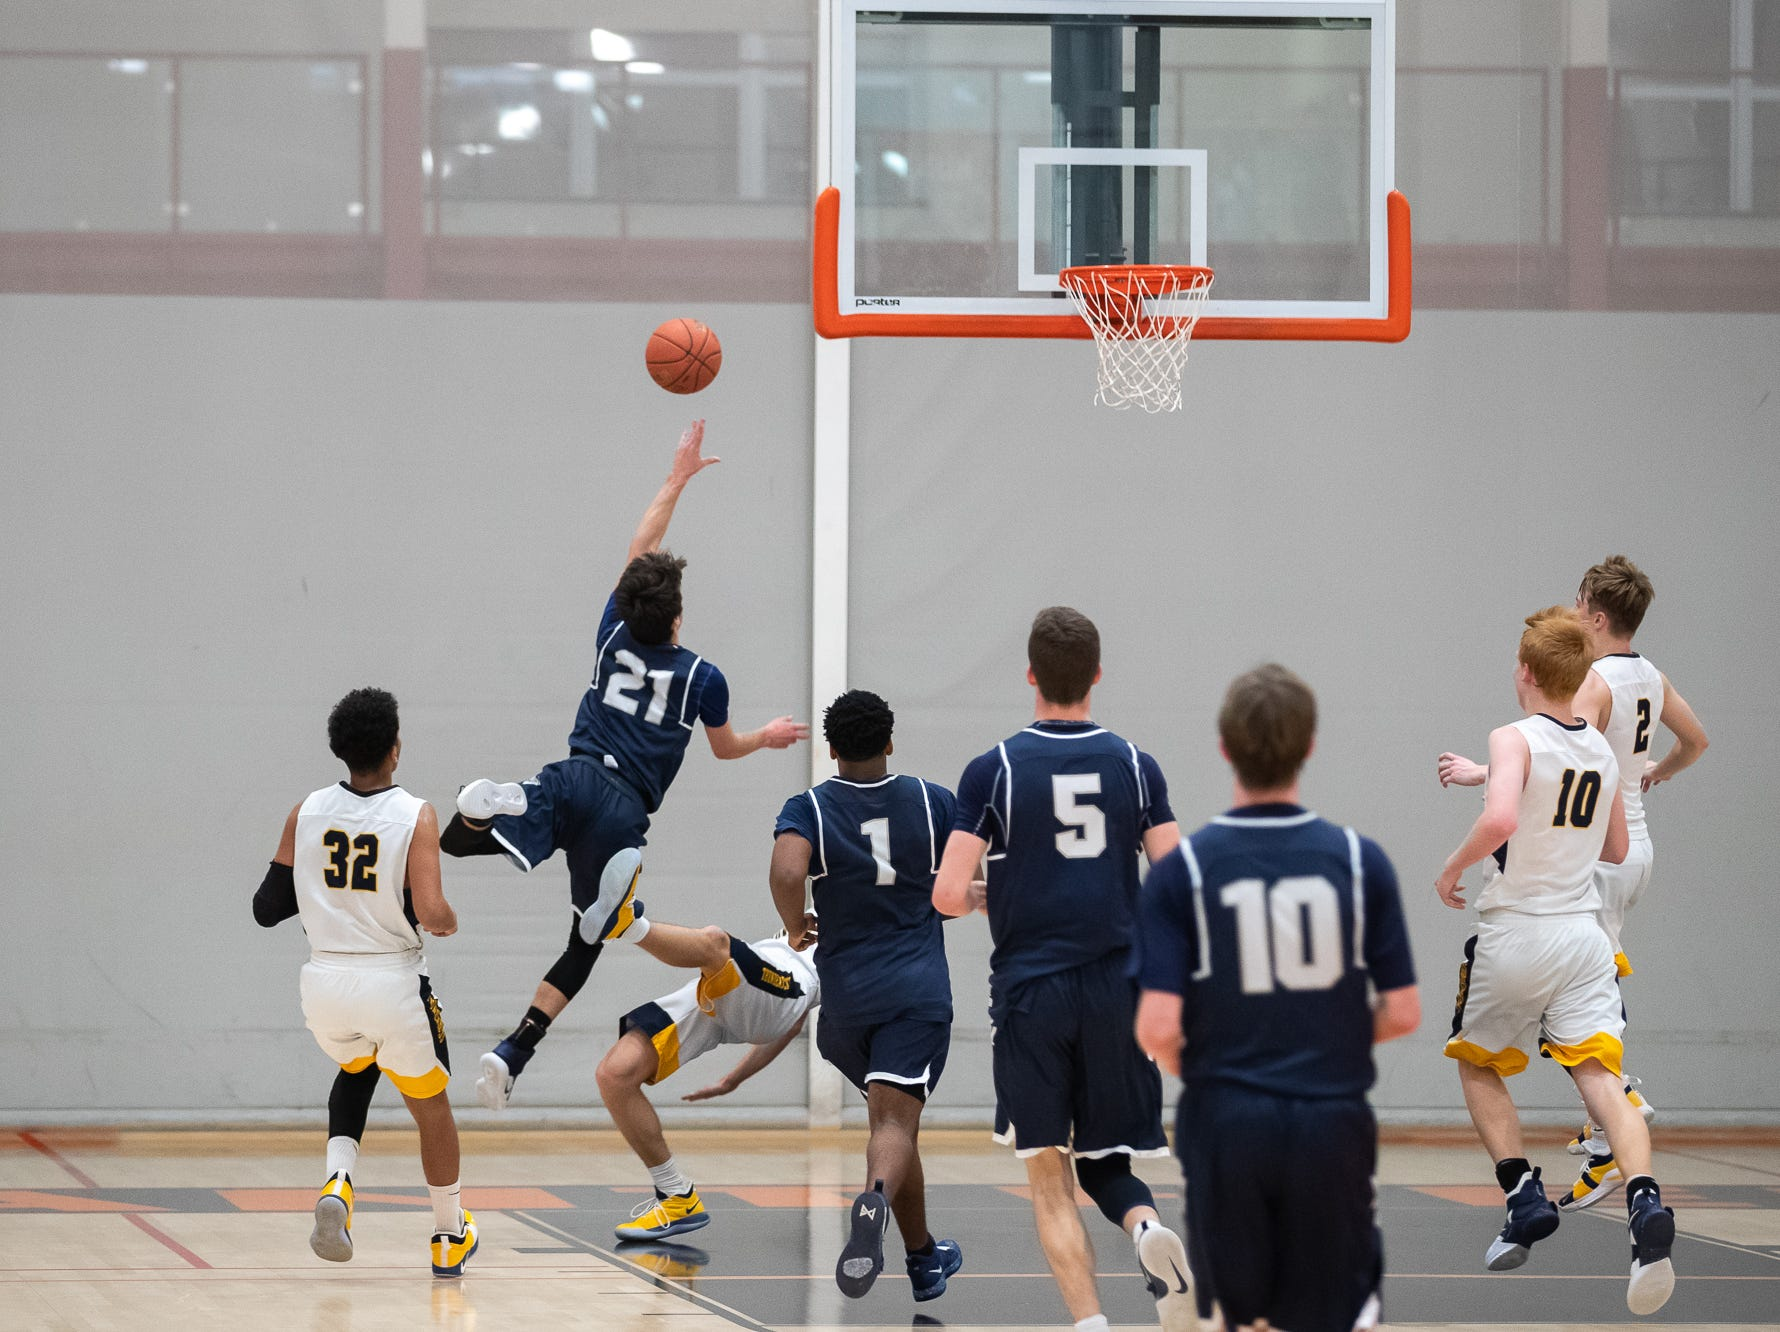 West York's Jared Shearer (21) shoots for a layup during the second half of the YAIAA boys' basketball quarterfinals between Littlestown and West York, Saturday, Feb. 9, 2019, at Central York High School. The Littlestown Bolts defeated the West York Bulldogs 73-63.